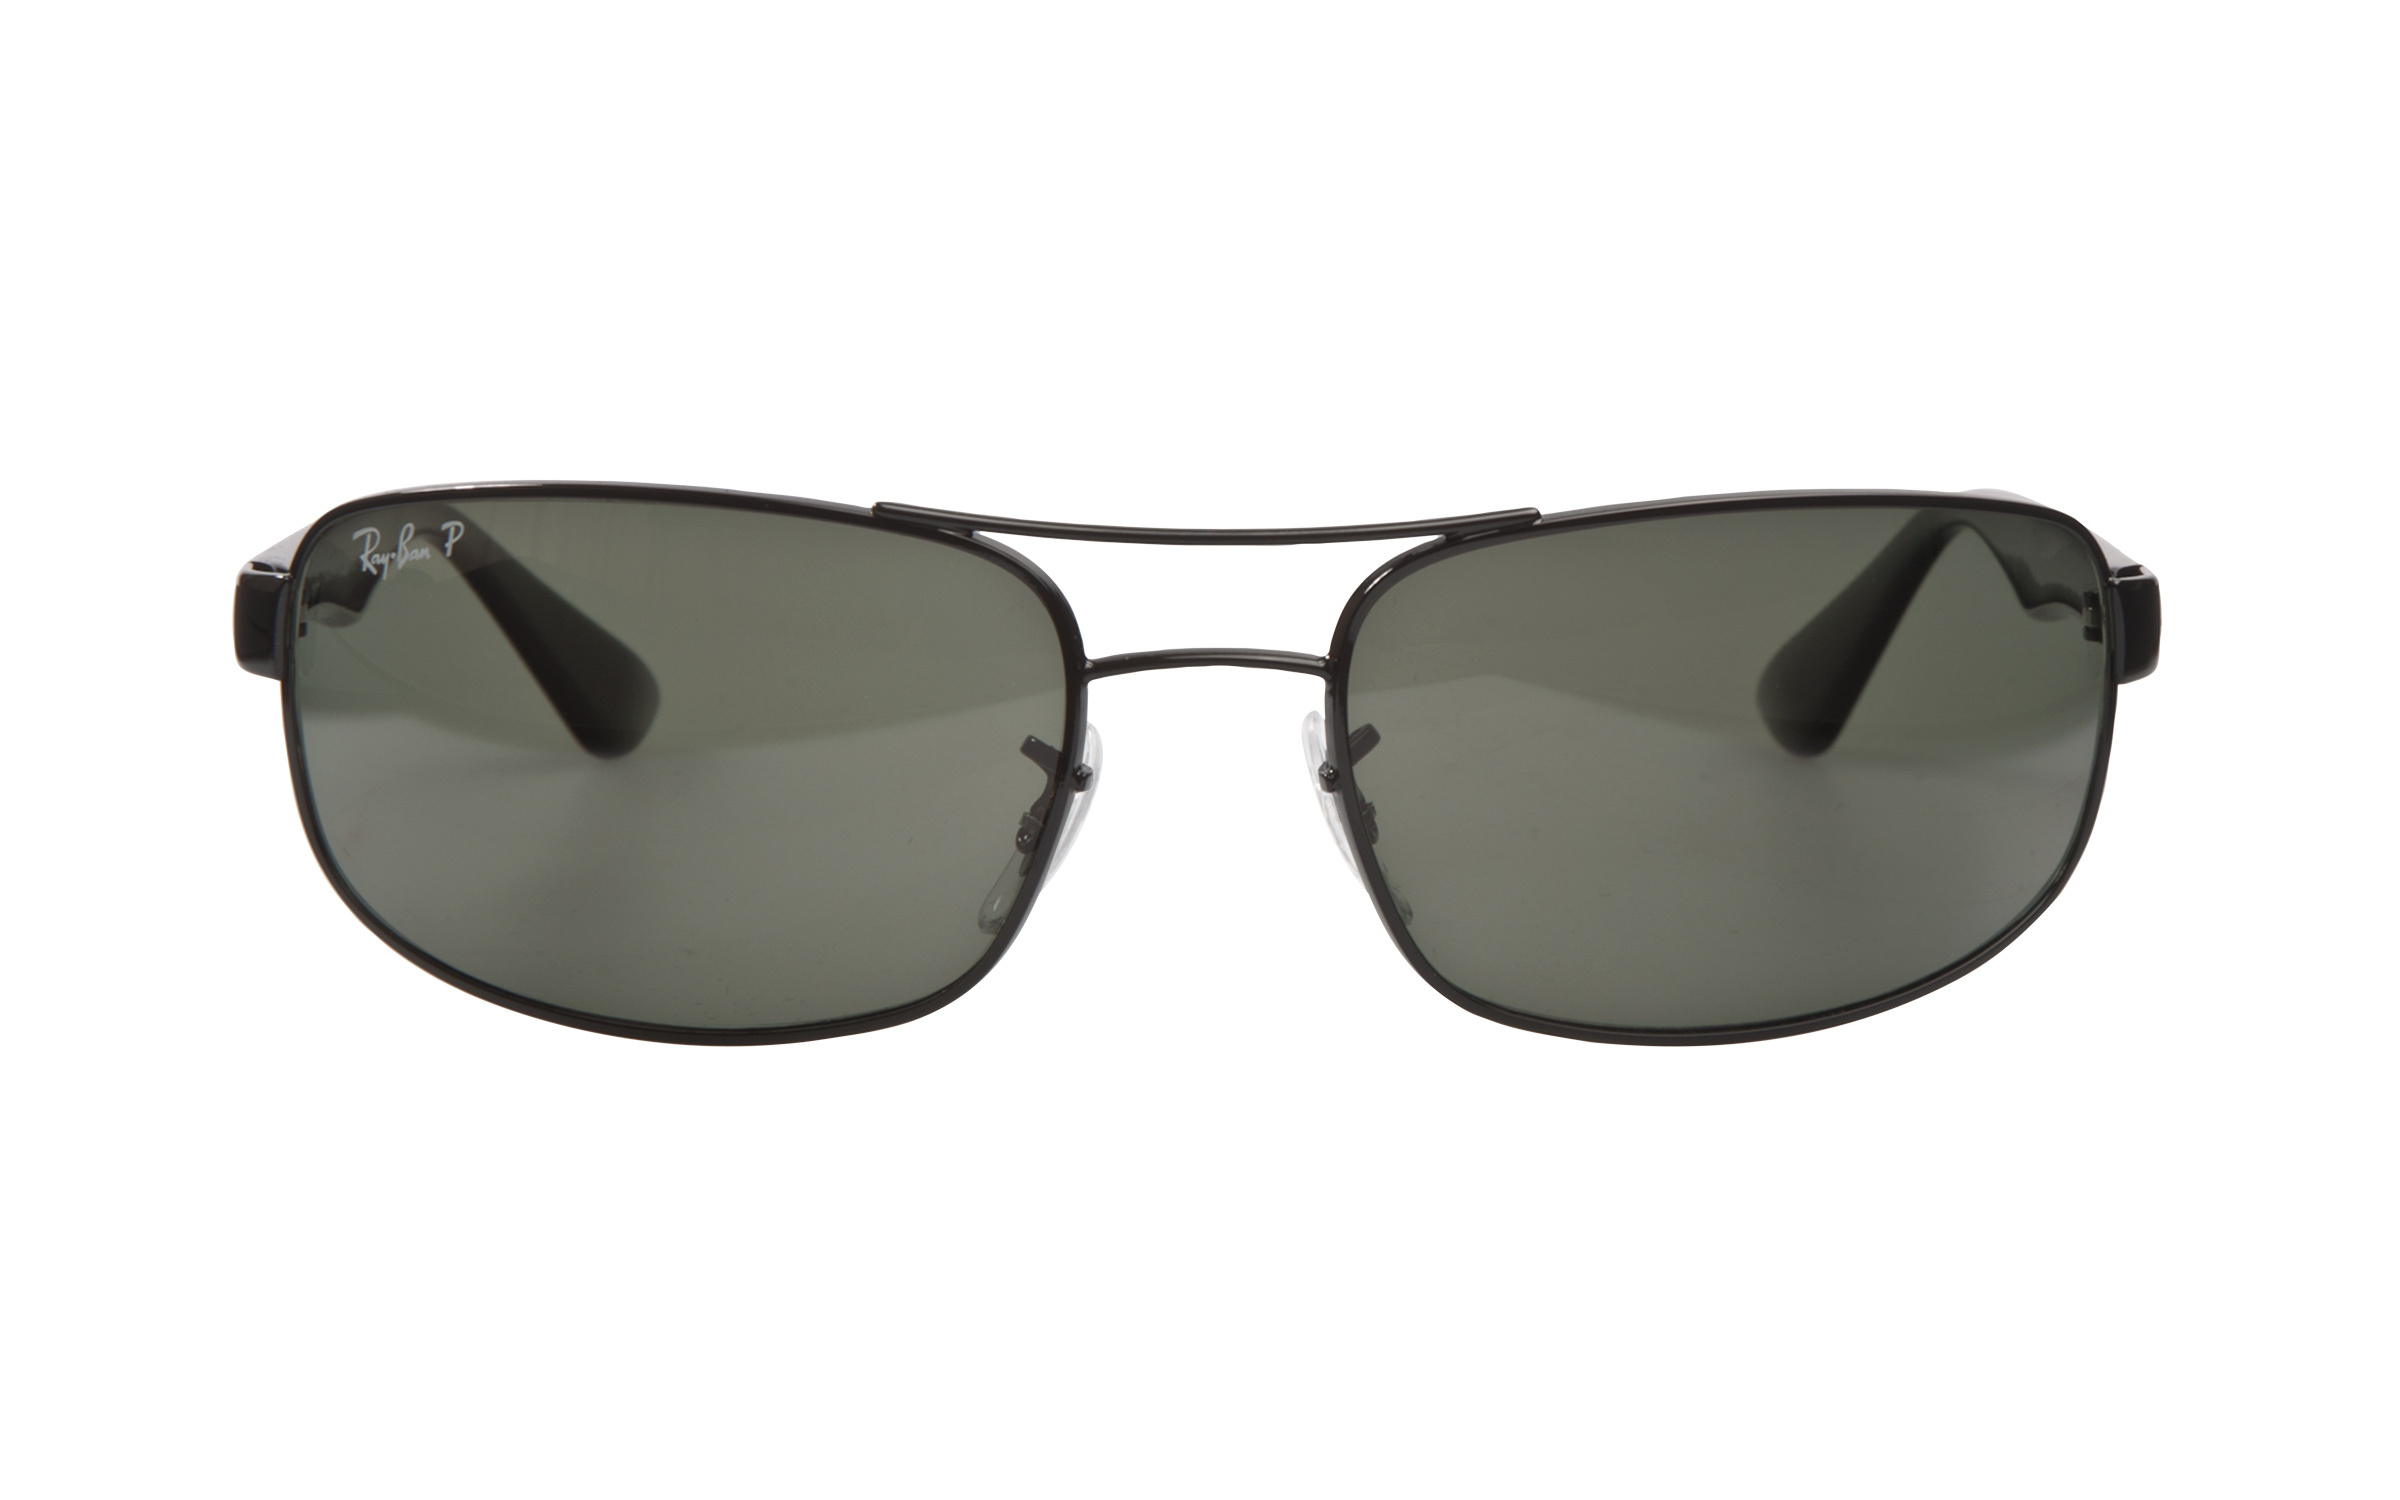 Ray-Ban 3445-002 58 Sunglasses in Black | Polarized/Metal - Online Coastal